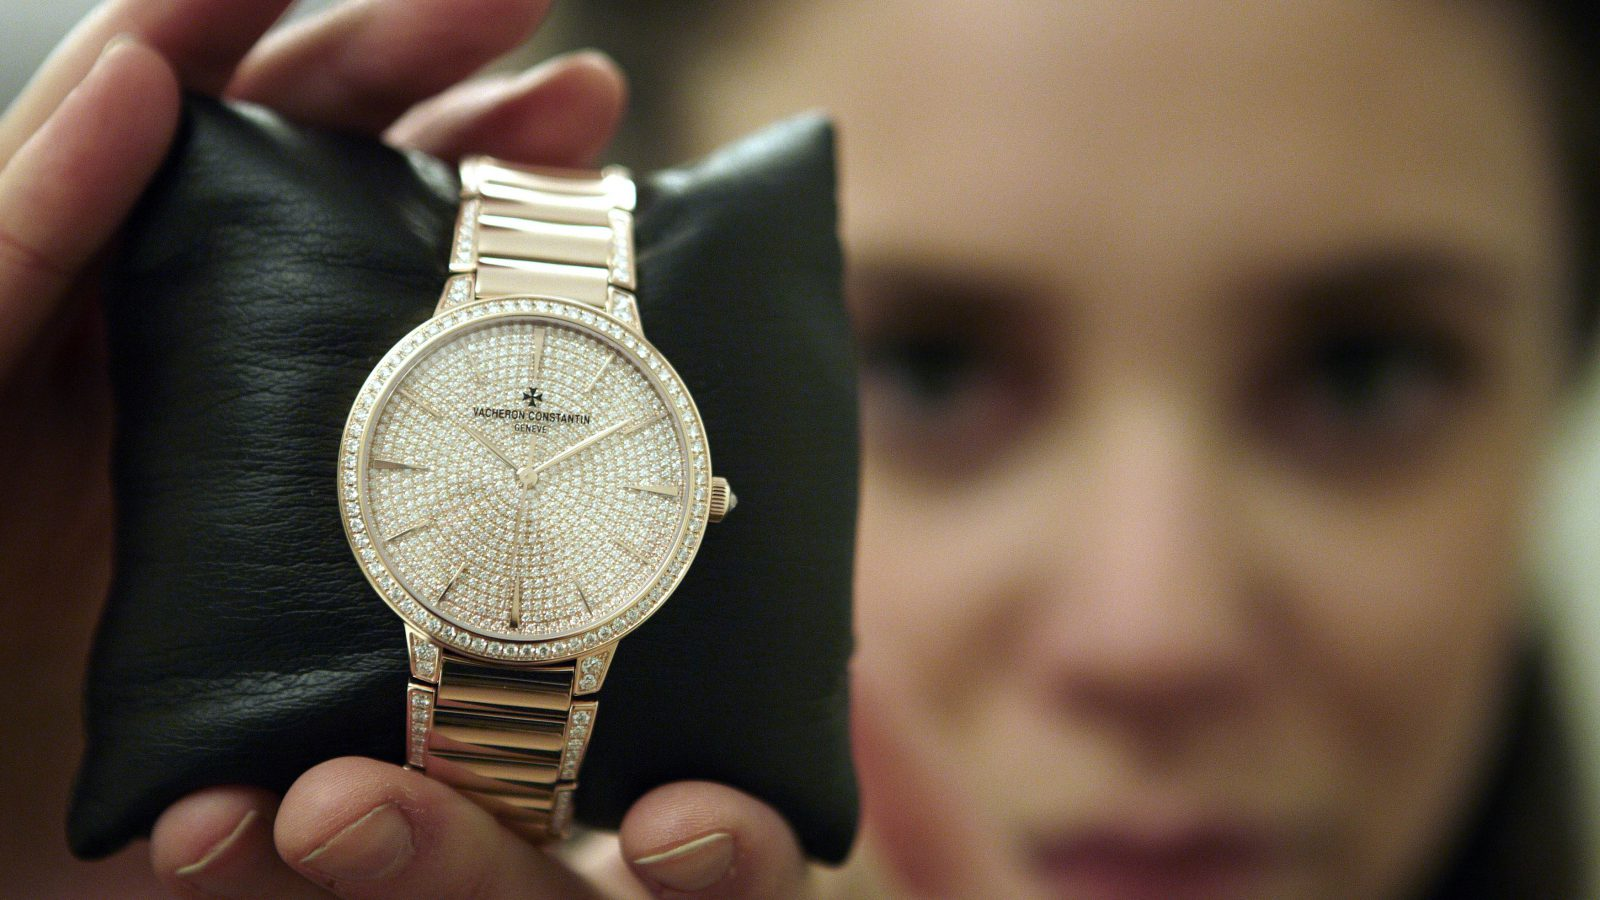 """A member of staff holds a Vacheron Constantin golden watch made with 778 diamonds at the """"Salon International de la Haute Horlogerie"""" SIHH exhibition at the Palexpo in Geneva January 21, 2013. Some 16 brands of watches and jewellery, part of the Richemont group, are exhibiting their new models from January 21 to 25, 2013. REUTERS/Denis Balibouse (SWITZERLAND - Tags: BUSINESS SOCIETY) - RTR3CQVL"""